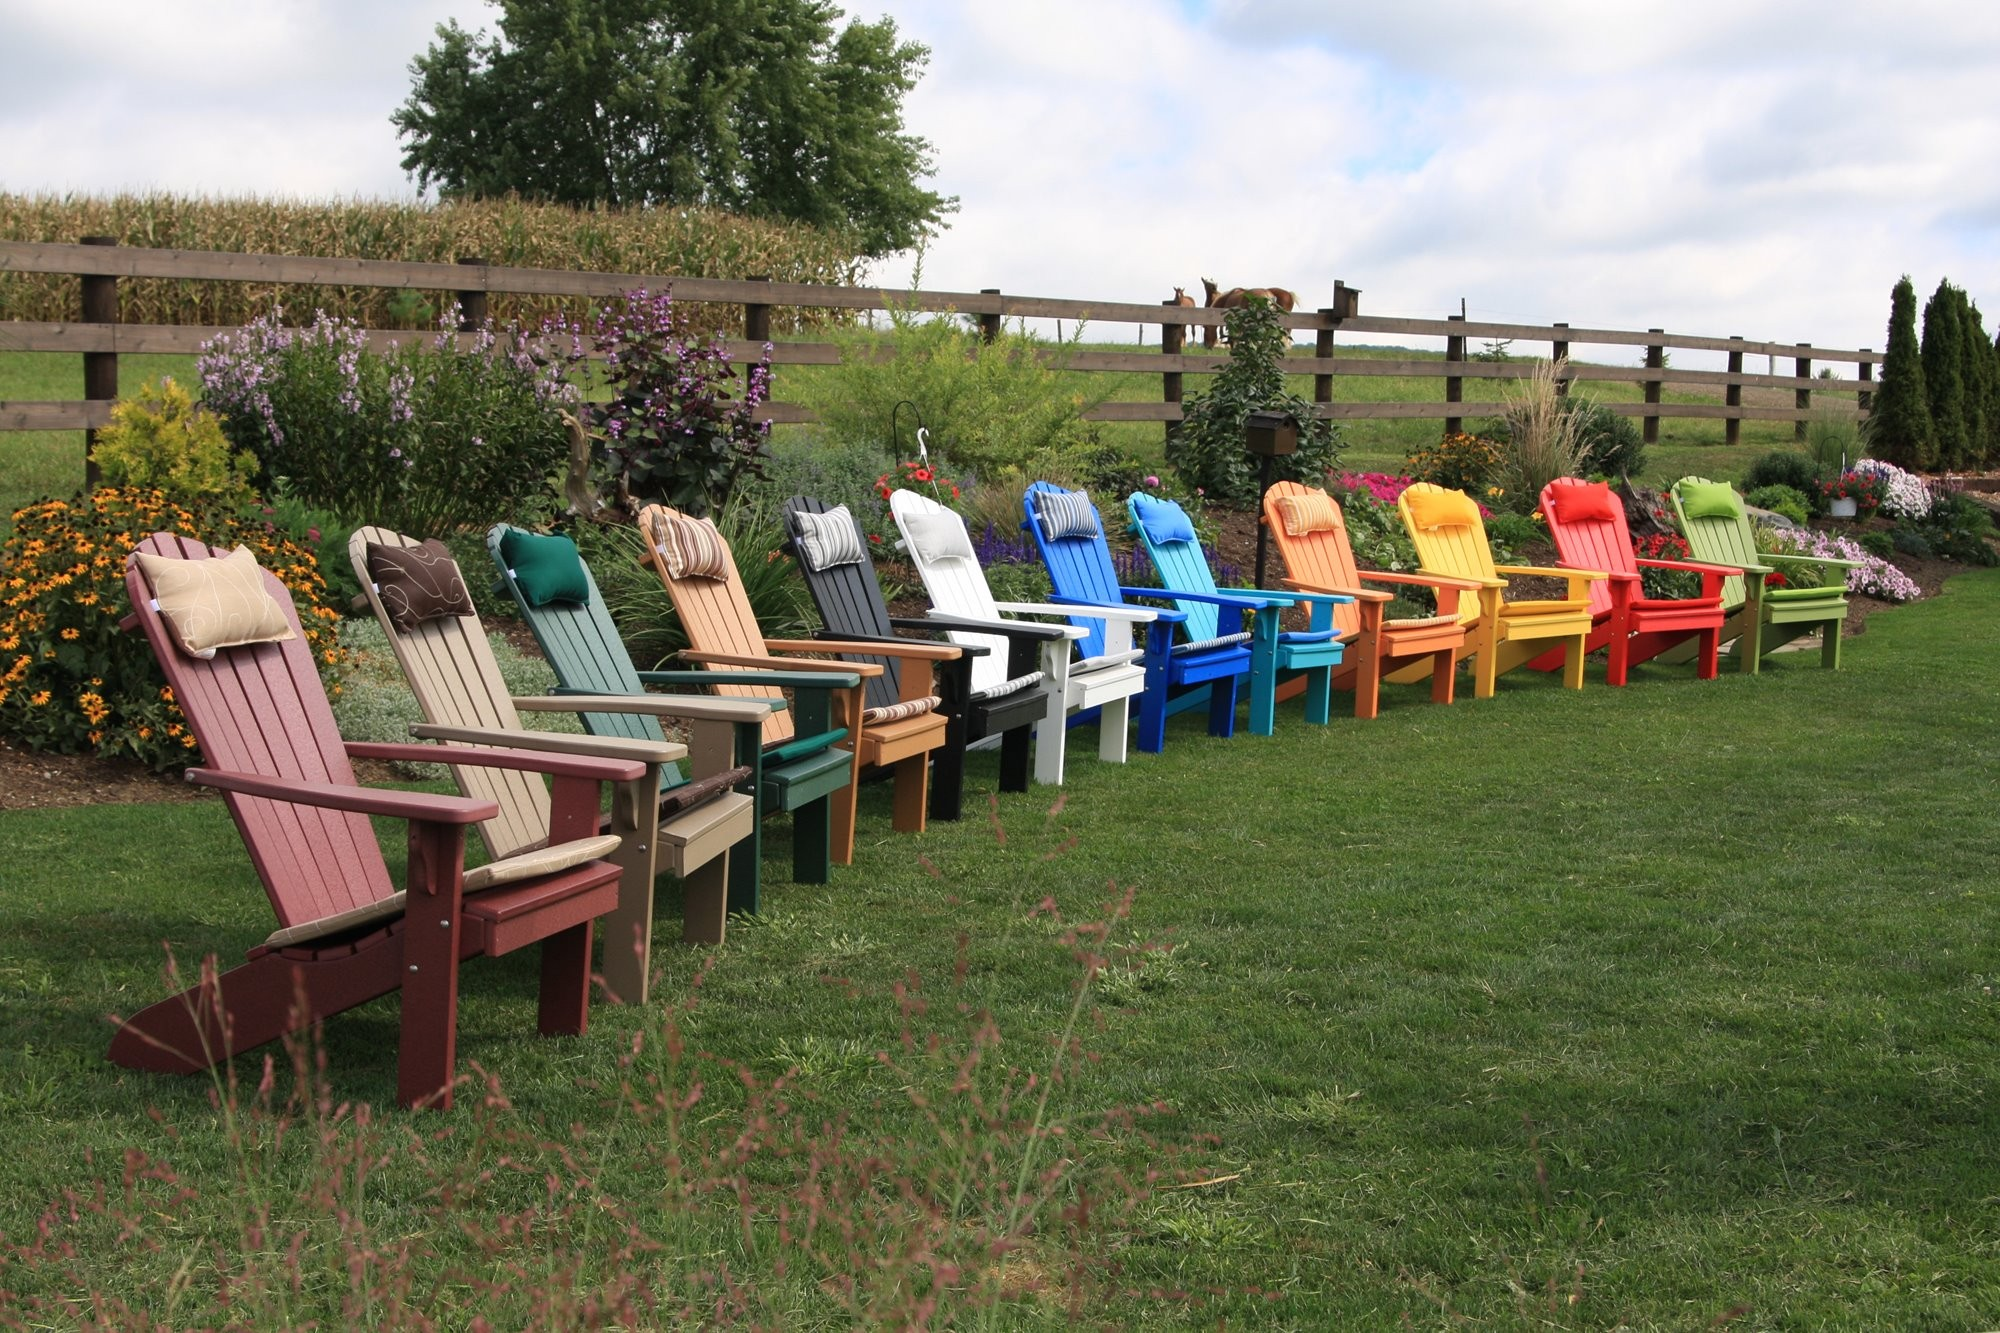 Colorful adirondack chairs - Adirondack Chair Outdoor Head Pillow